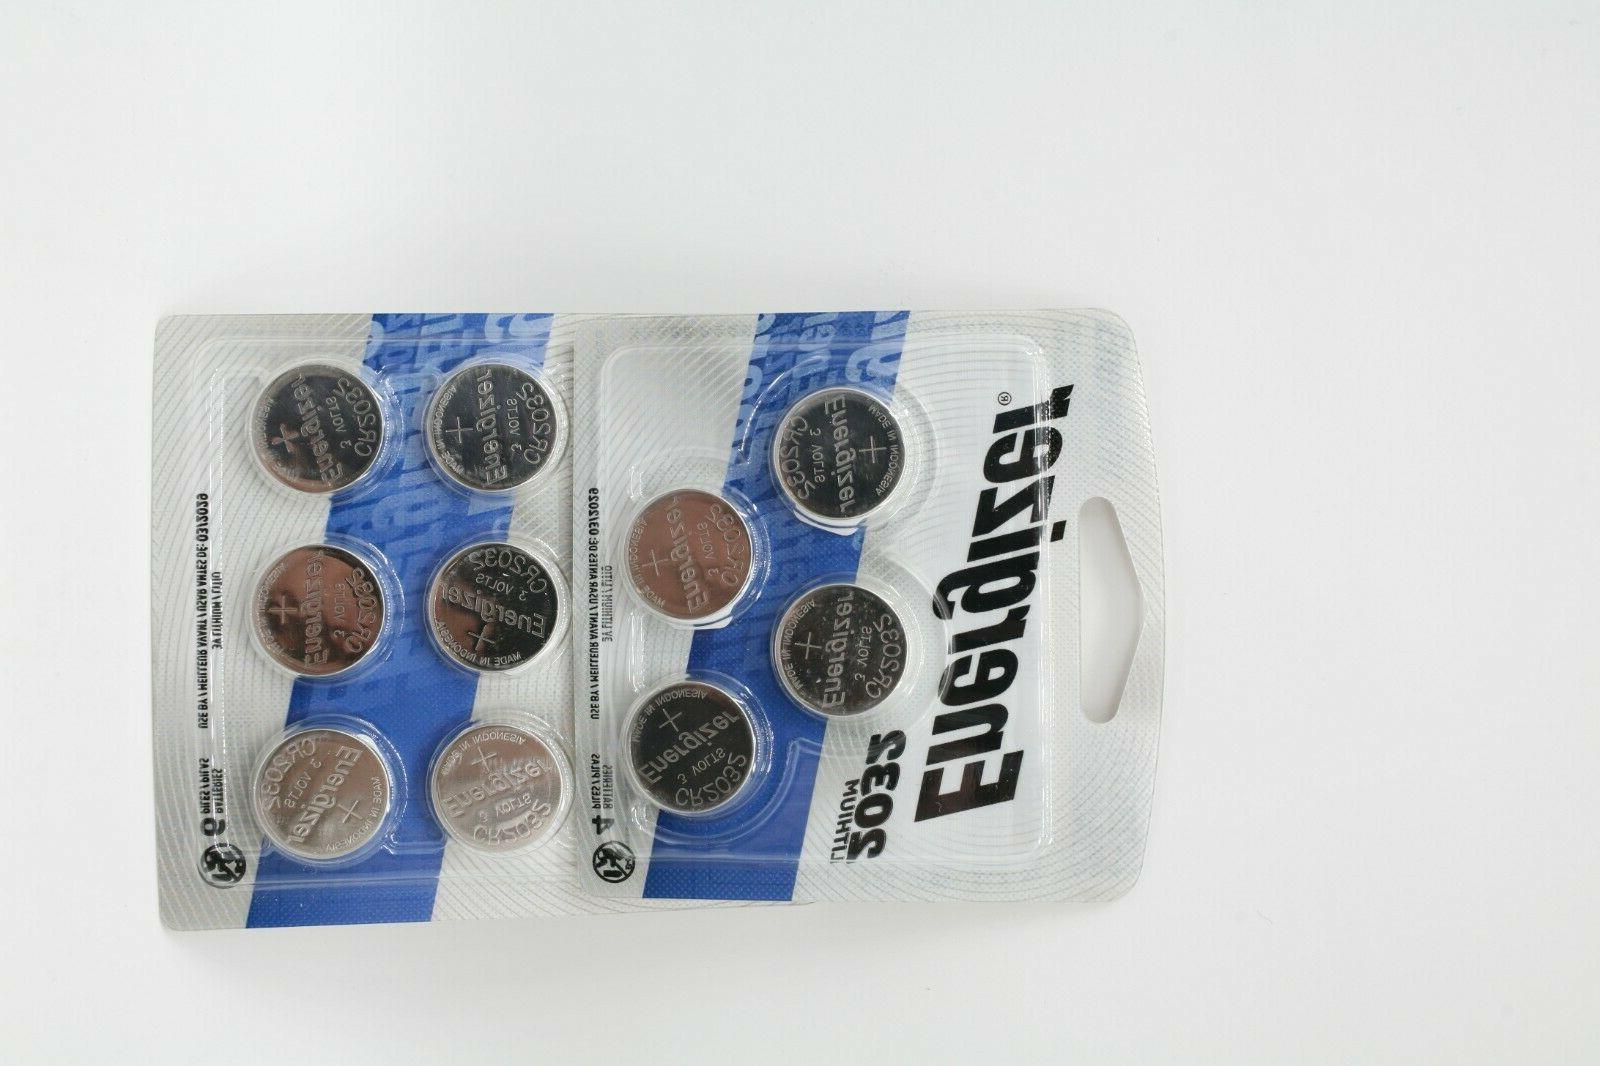 Energizer Lithium Coin Cell 1 Pack ea 4 6 Batteries